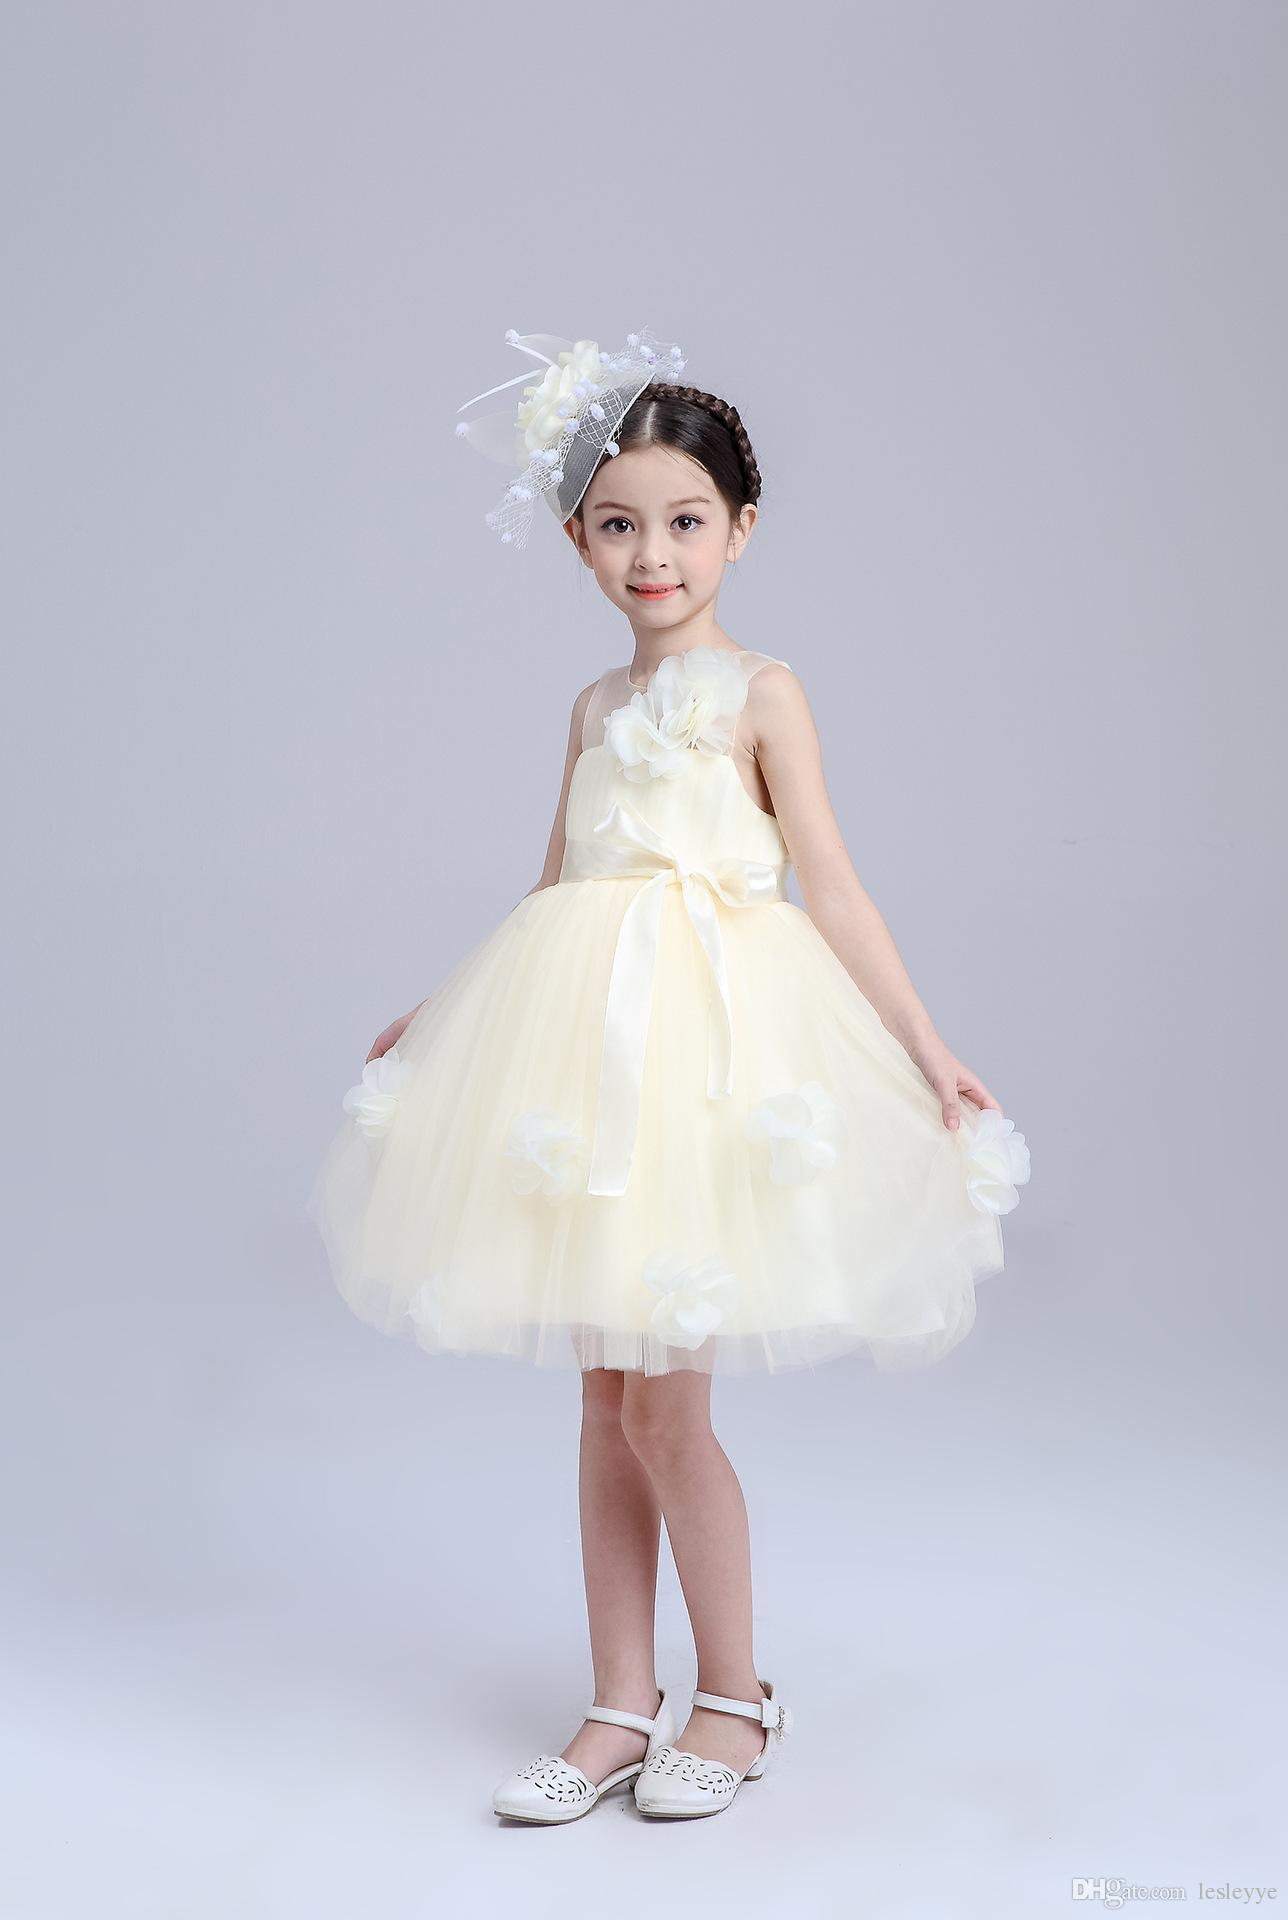 a9877c5bb197 2019 Summer Girls Clothes Girls Princess Party Layers Of Dress Kids Wear  Casual Dresses Fashion Princess Dress Children Clothing Lace Dresses From  Lesleyye